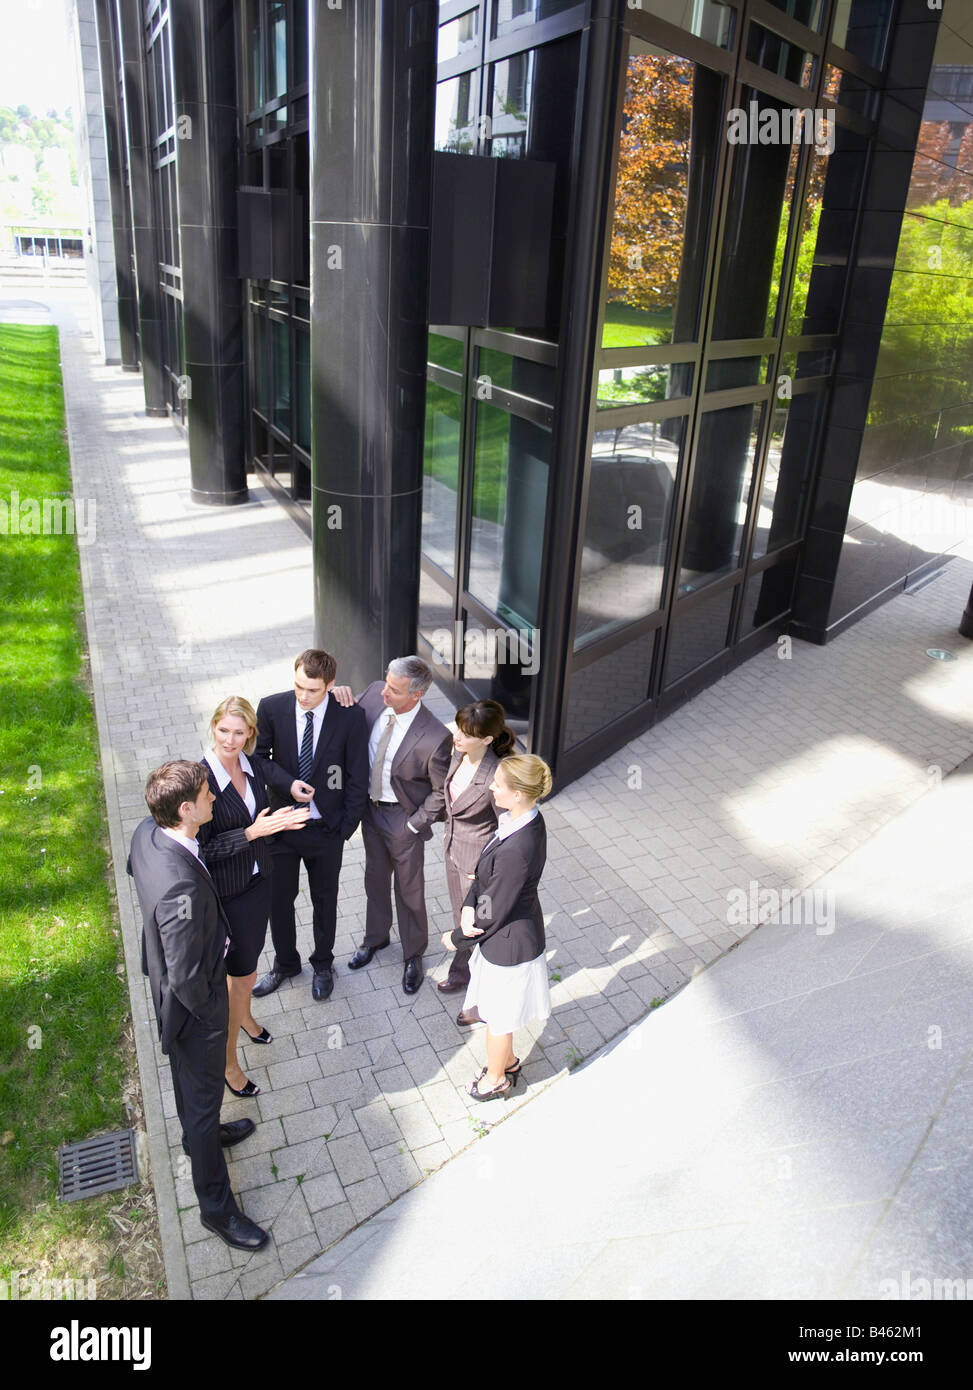 Allemagne, Baden-Württemberg, Stuttgart, Businesspeople talking, elevated view Photo Stock